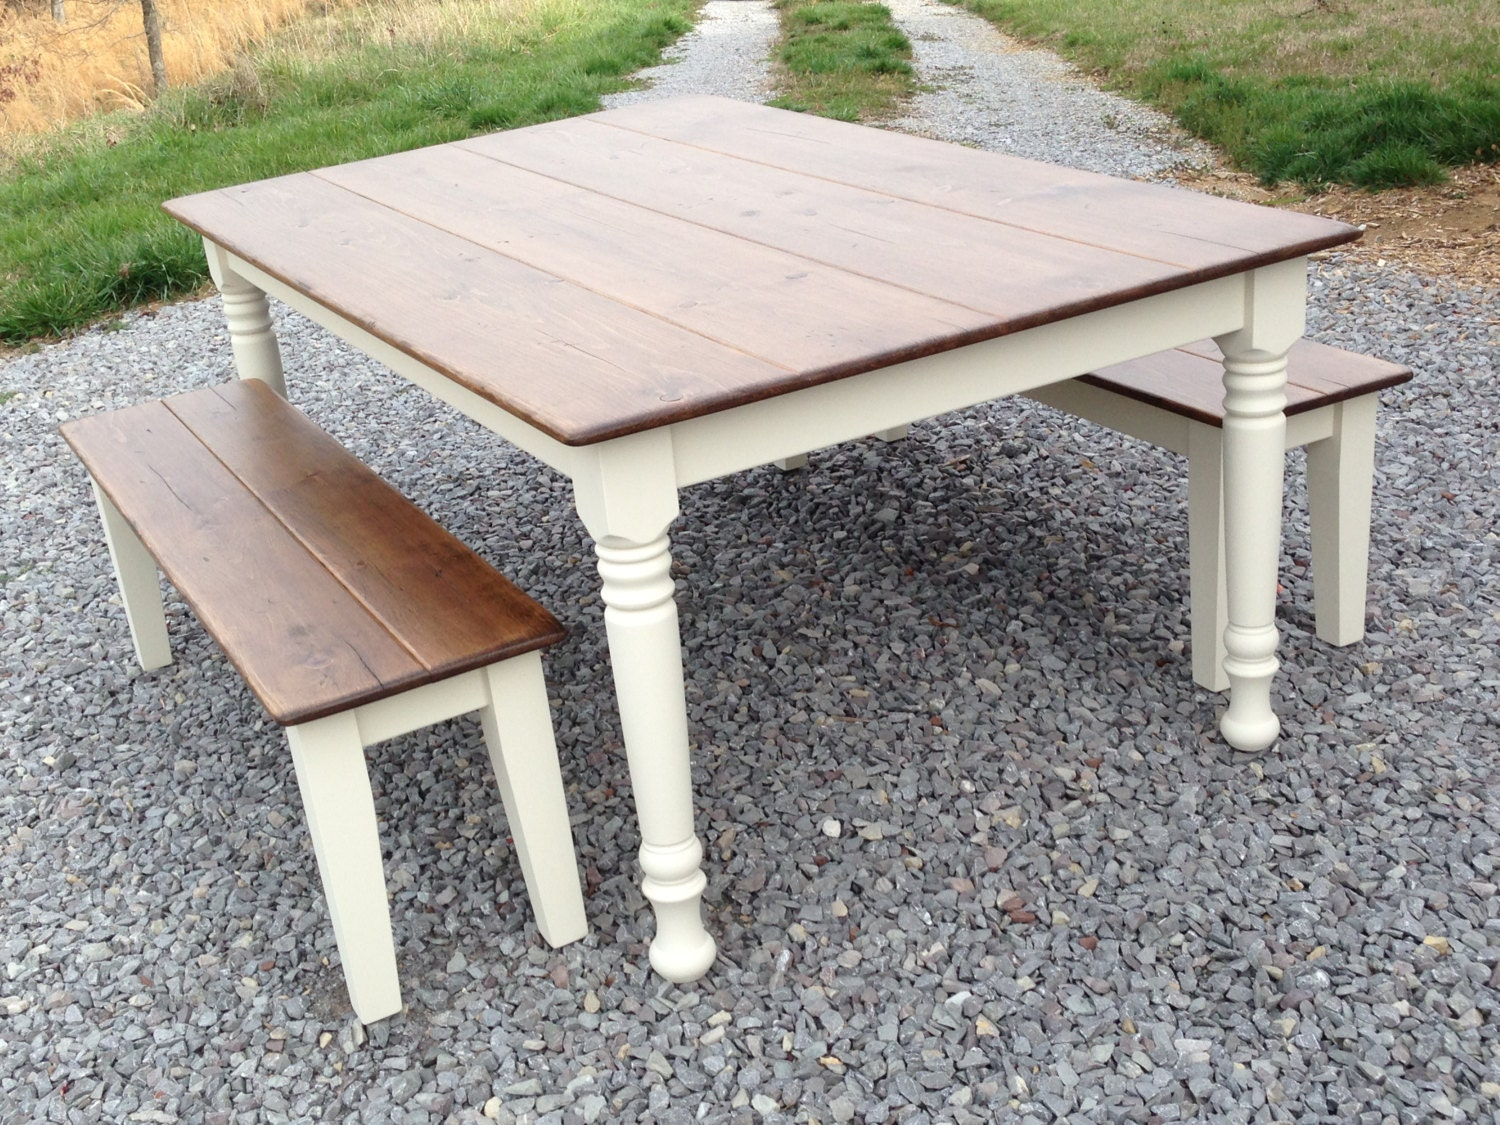 Top Ten Elegant Farmhouse Table with Bench